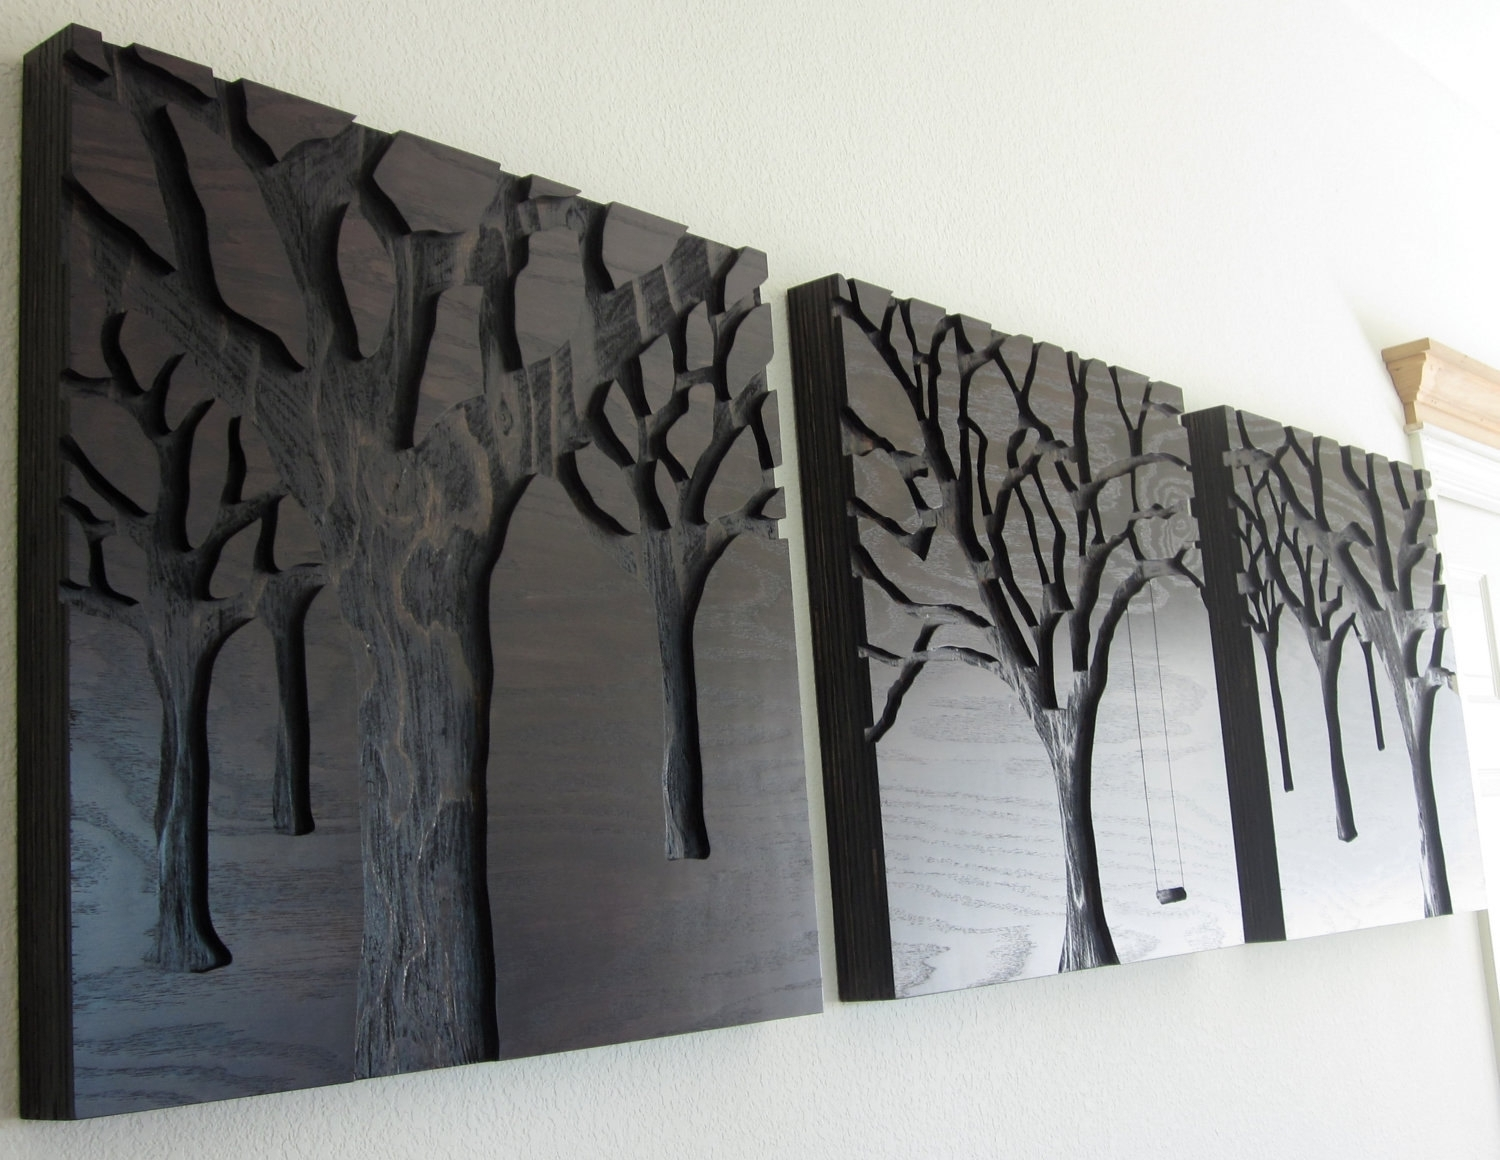 Rustic Wall Modern Style Art And Wood Tal Ideas Furniture Design With Most Popular Large Rustic Wall Art (View 5 of 20)